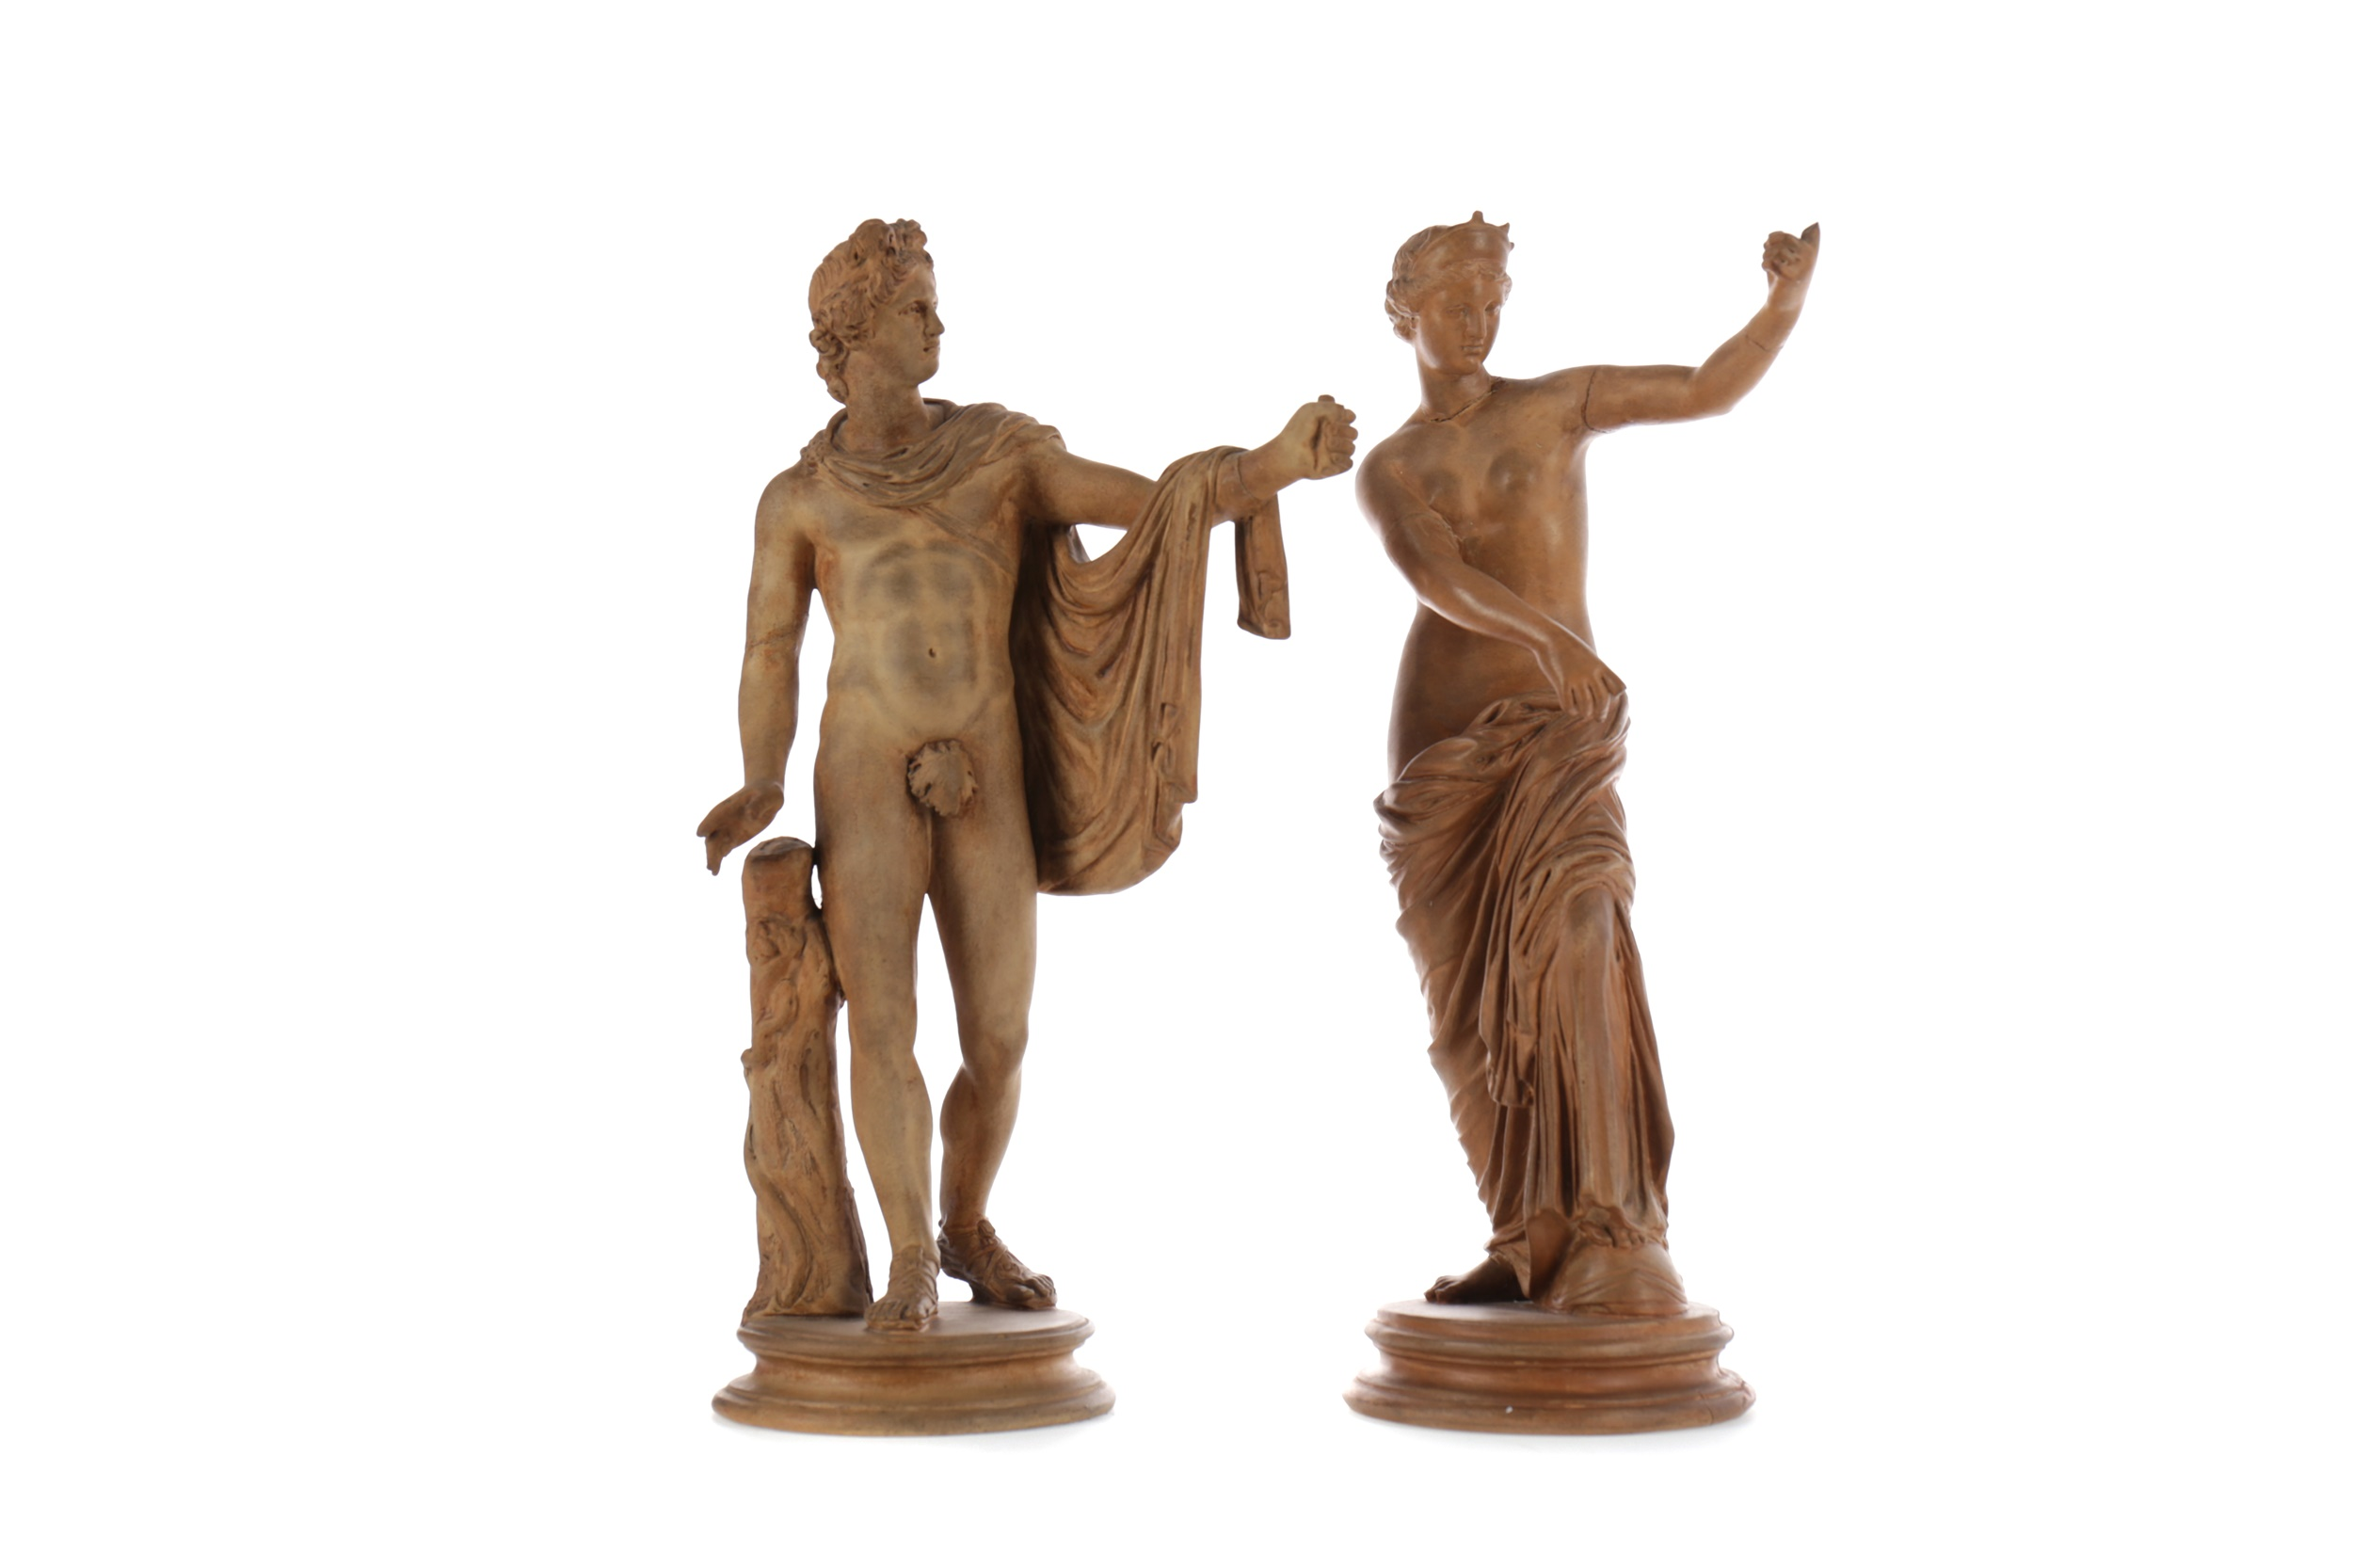 A PAIR OF LATE VICTORIAN TERRACOTTA FIGURES AFTER THE ANTIQUE